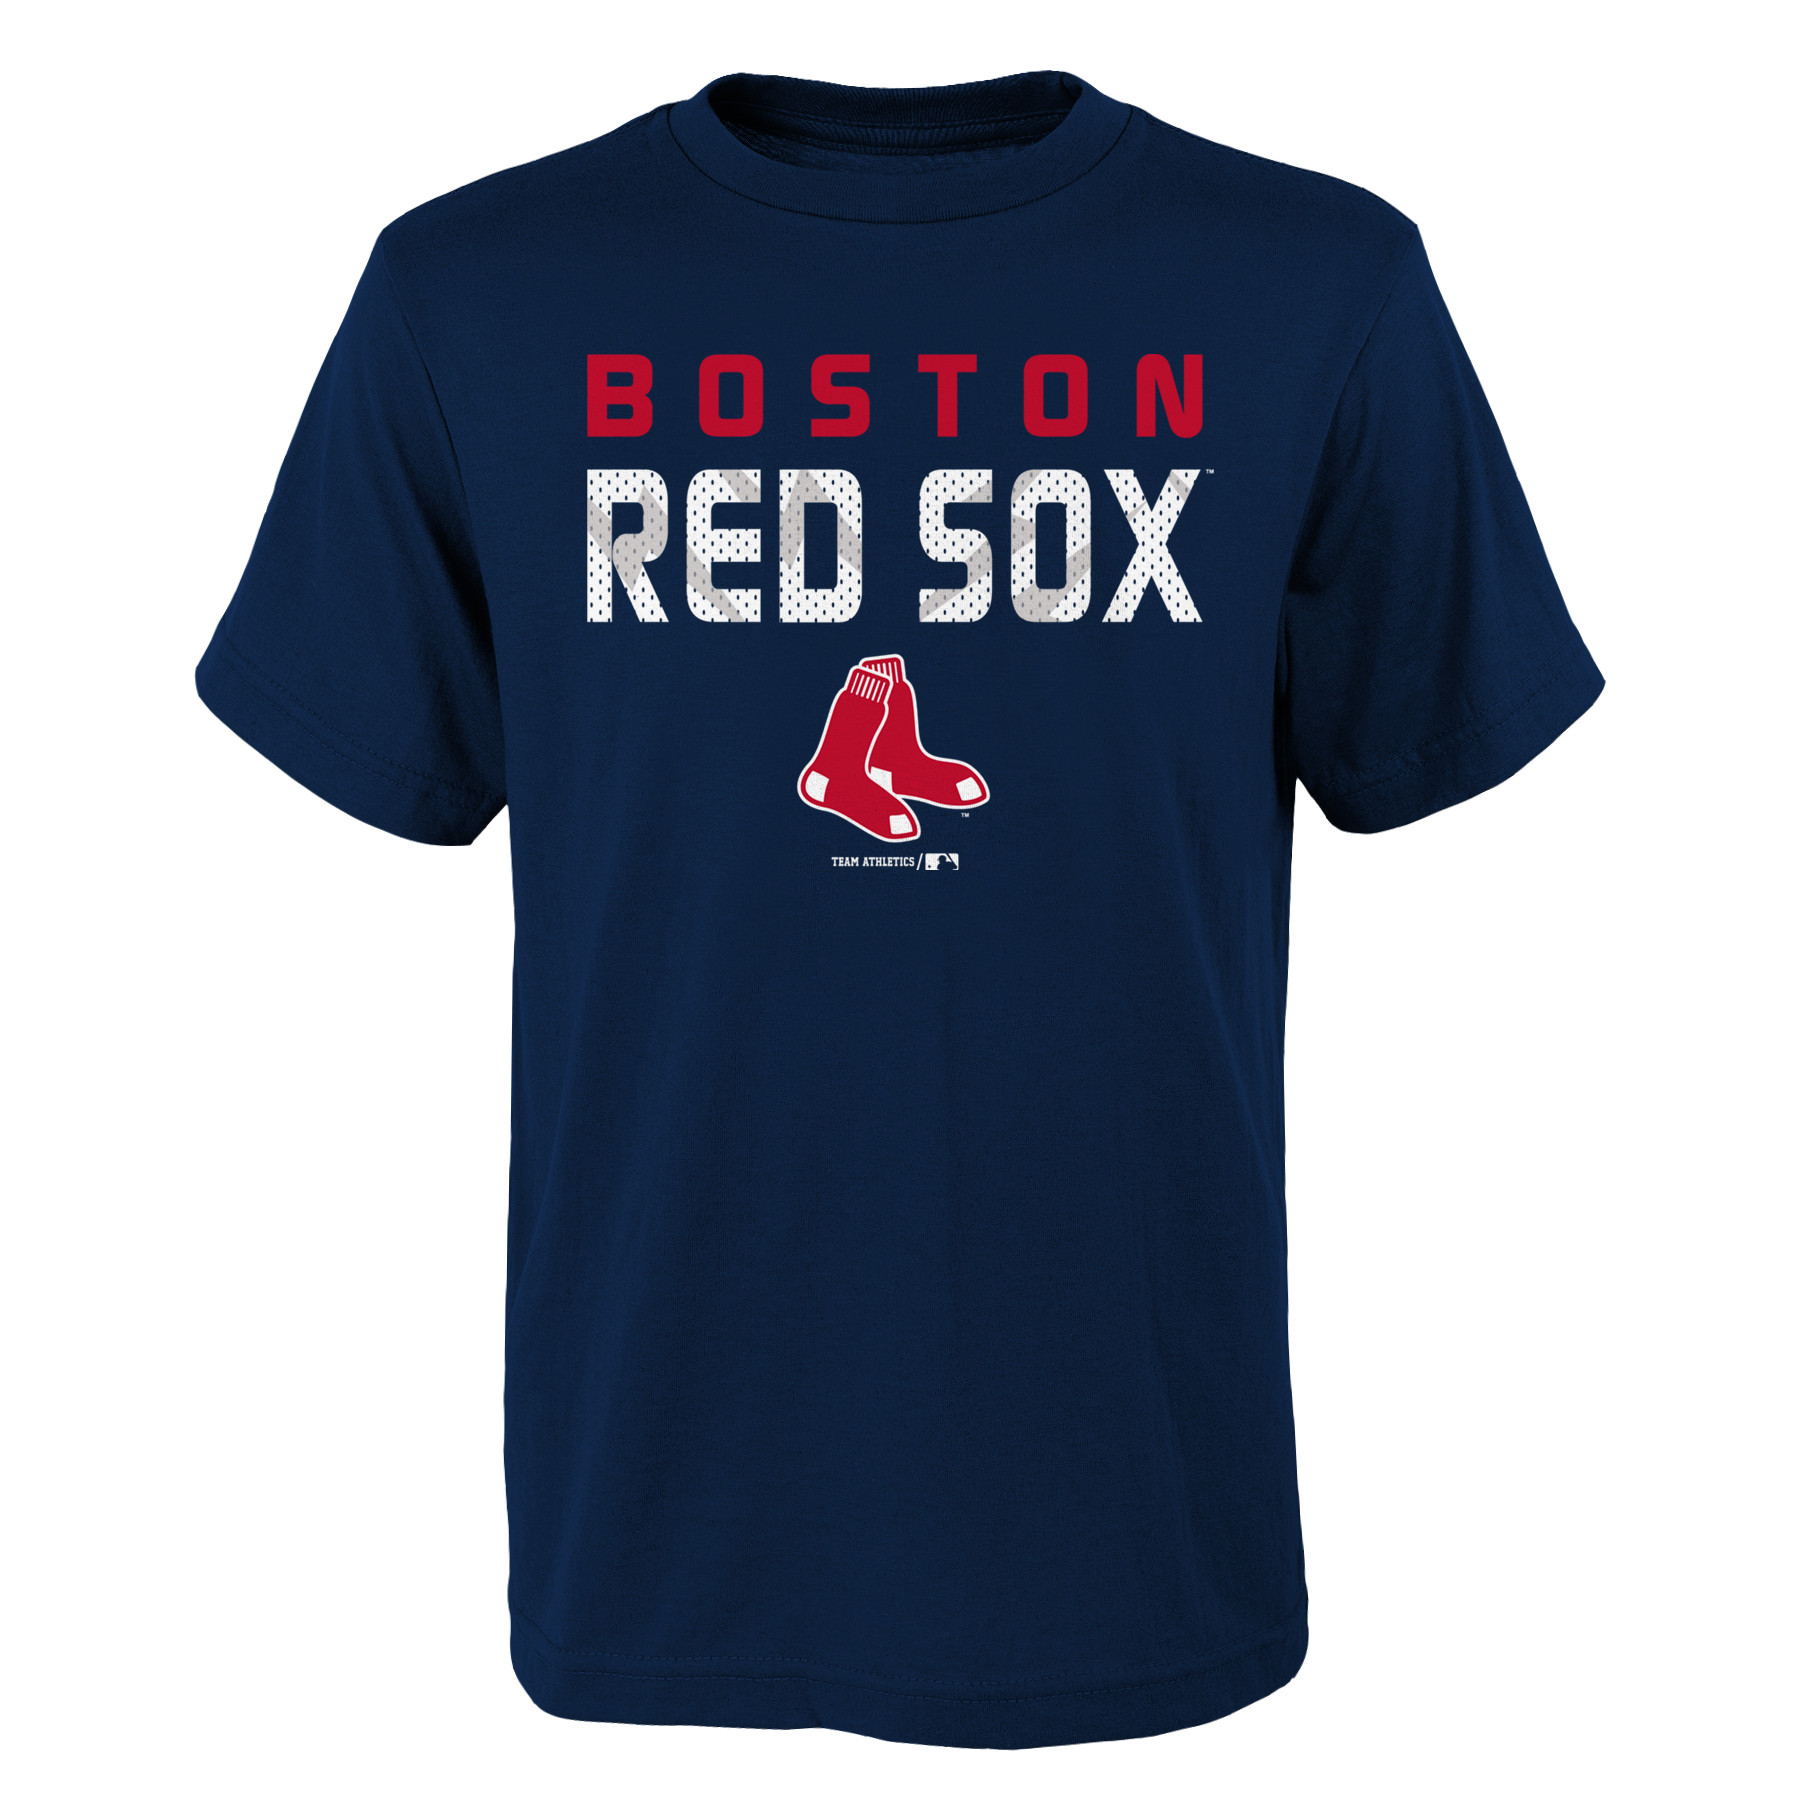 MLB Boston RED SOX TEE Short Sleeve Boys Team Name and LOGO 100% Cotton Team Color 4-18